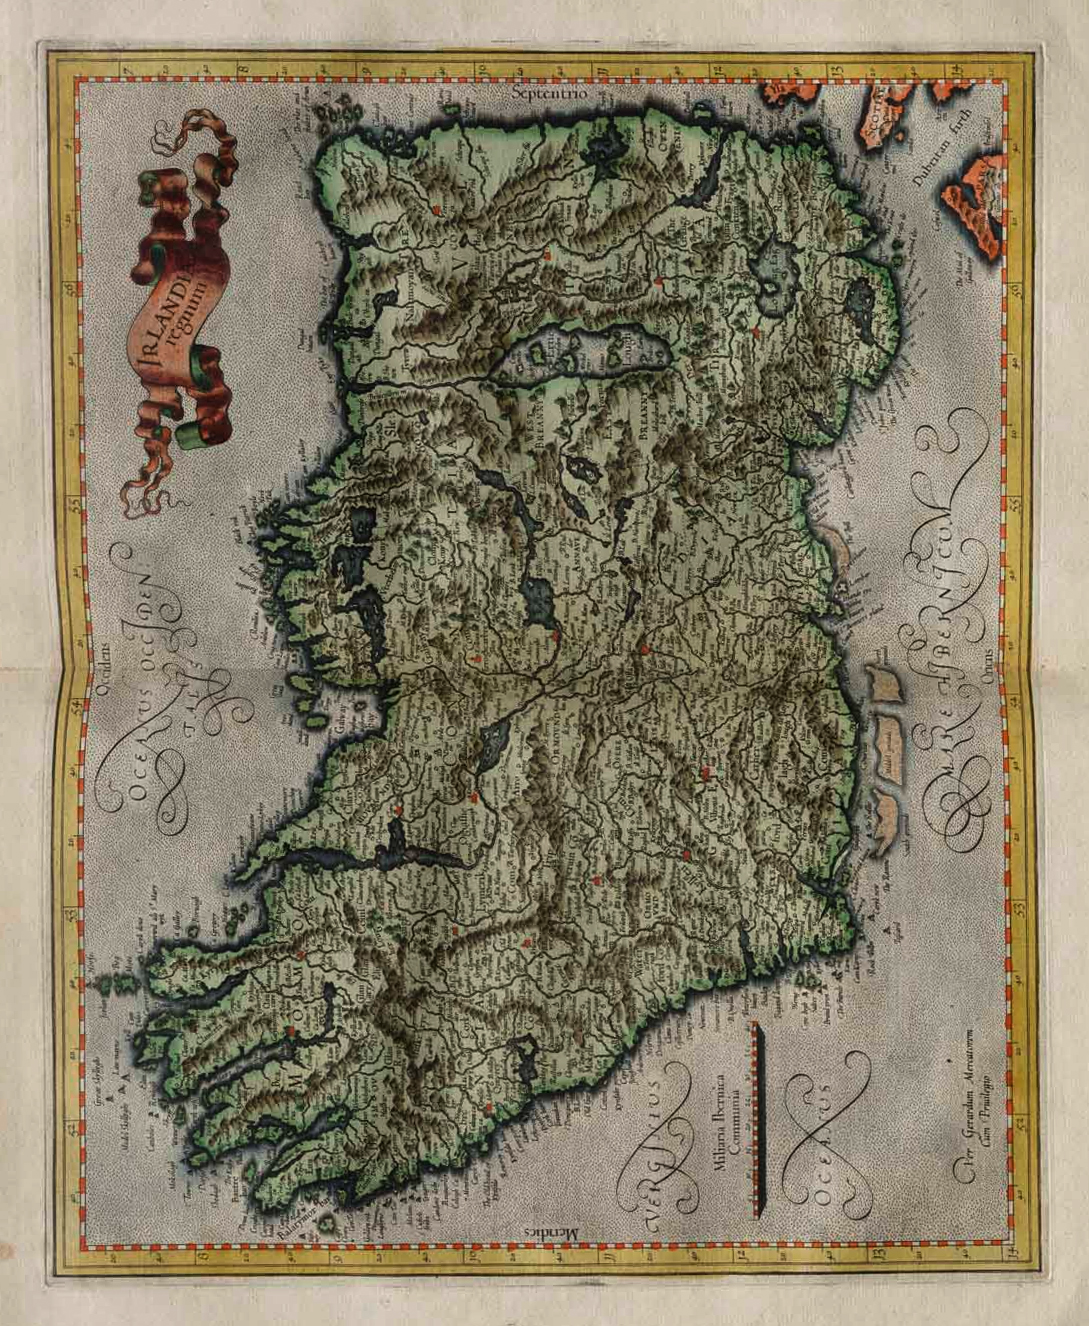 http://1.bp.blogspot.com/_ehPMAVfCOB8/TU4RV3l93JI/AAAAAAAABF4/p_PBWB-UUlA/s1600/Ireland_antique+map.jpg